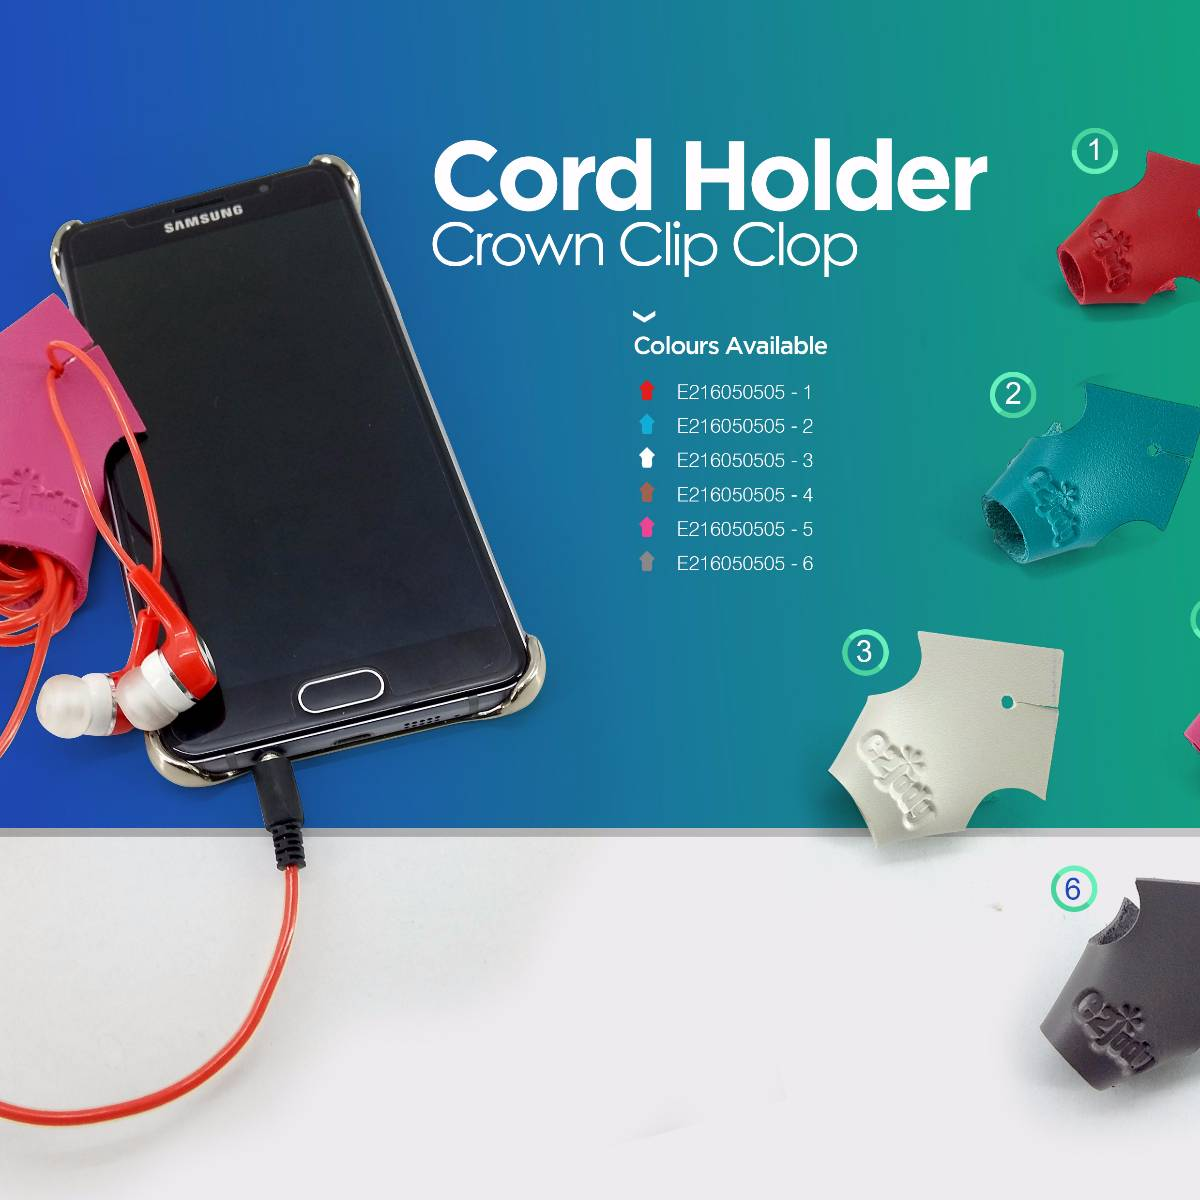 Cord Holder Crown